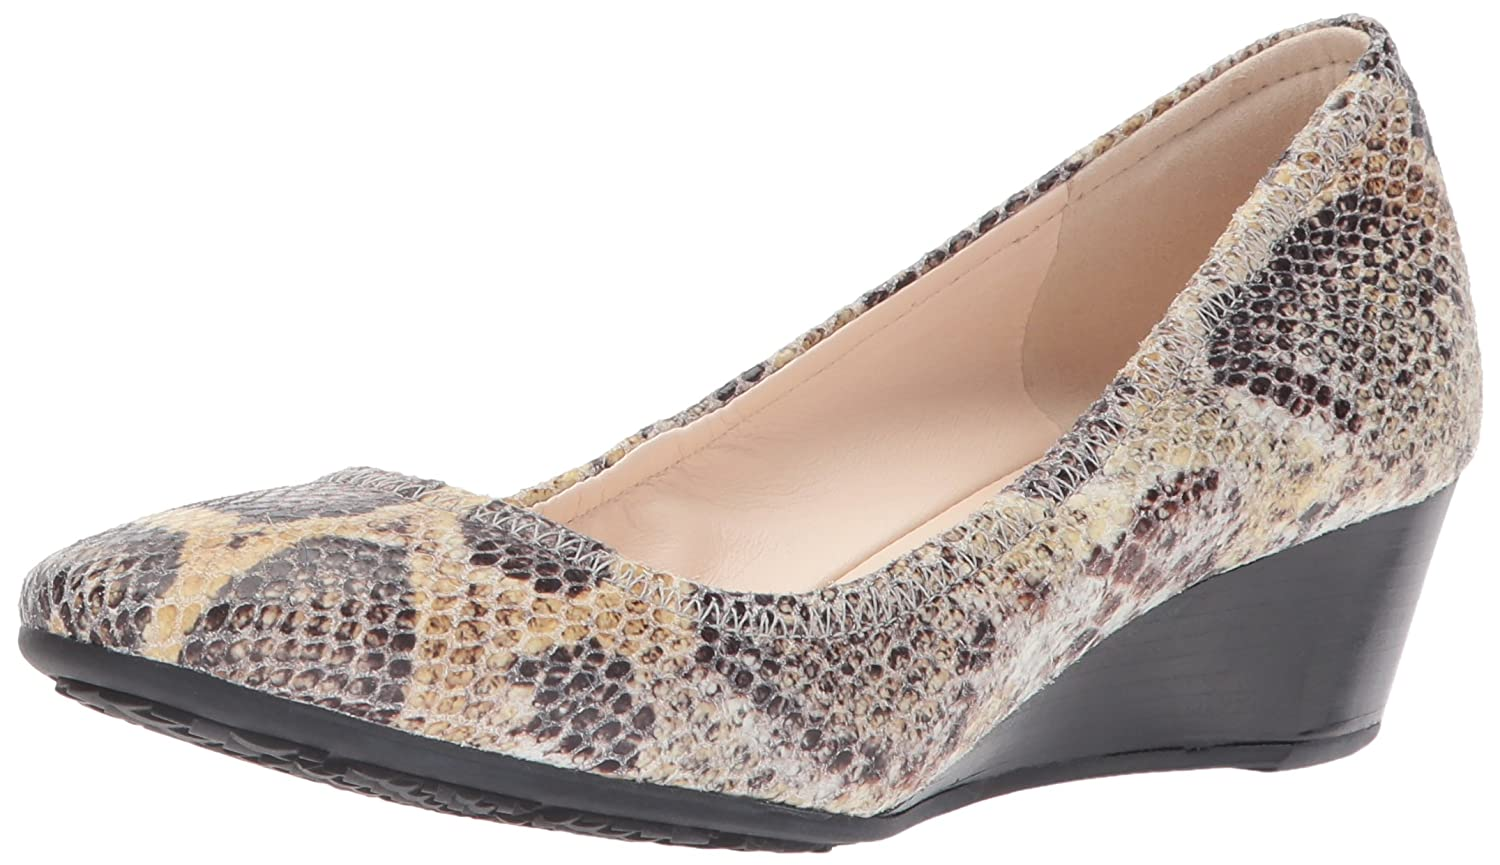 Roccia Snake Print Leather Cole Haan Women's Sadie Wedge 40MM Pump